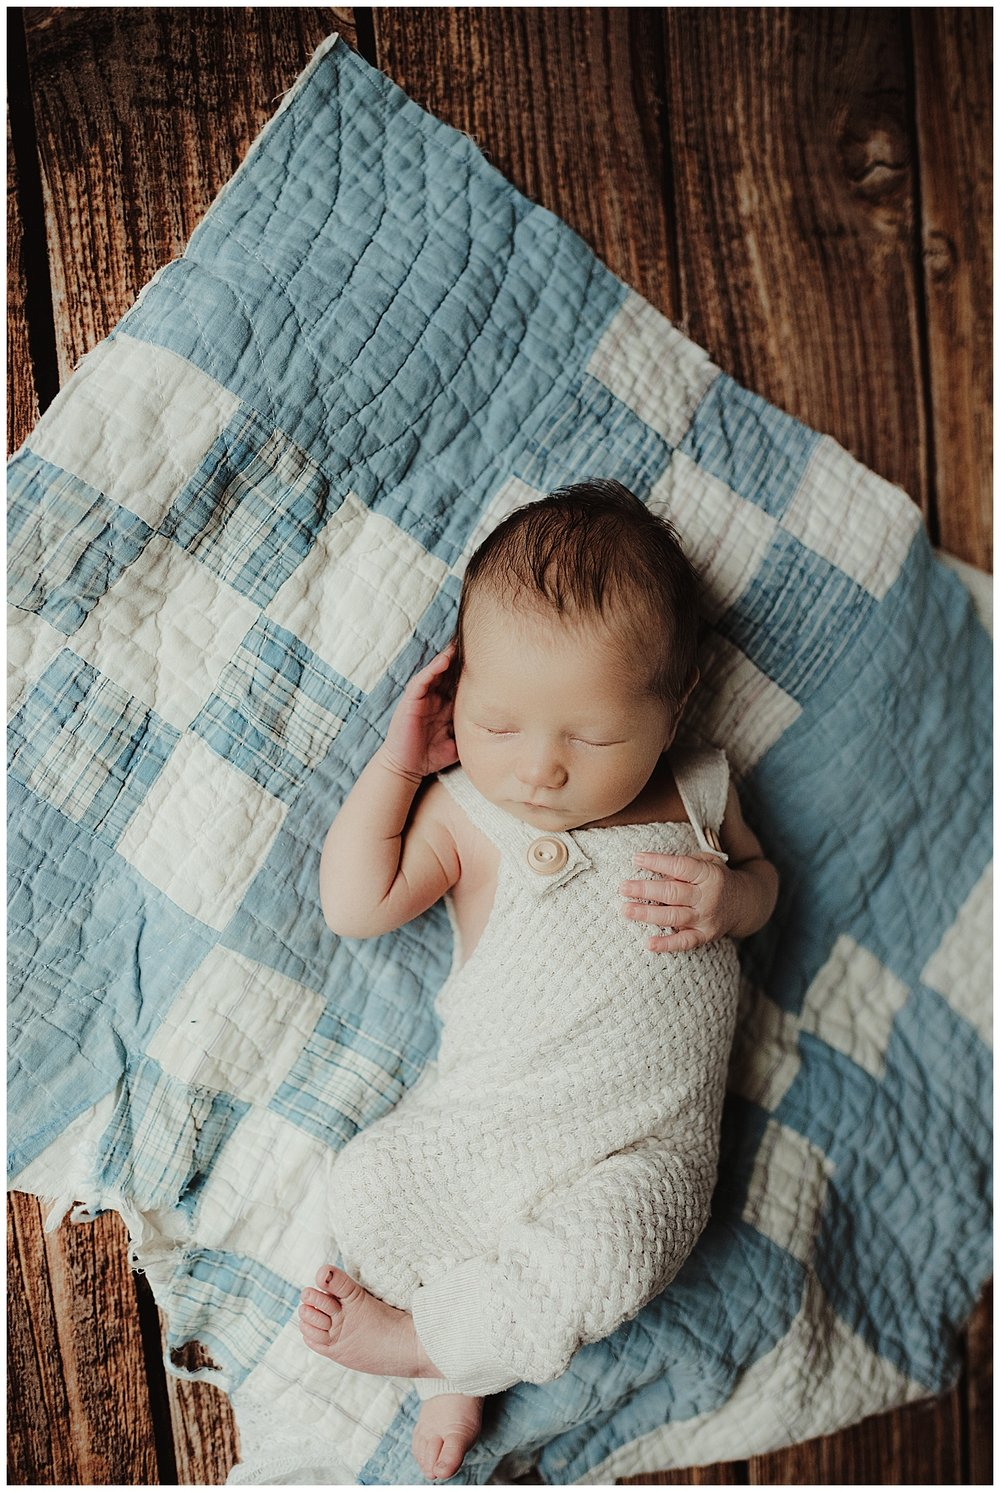 newborn photographer sun prairie wi Kayla E. Photography.jpg